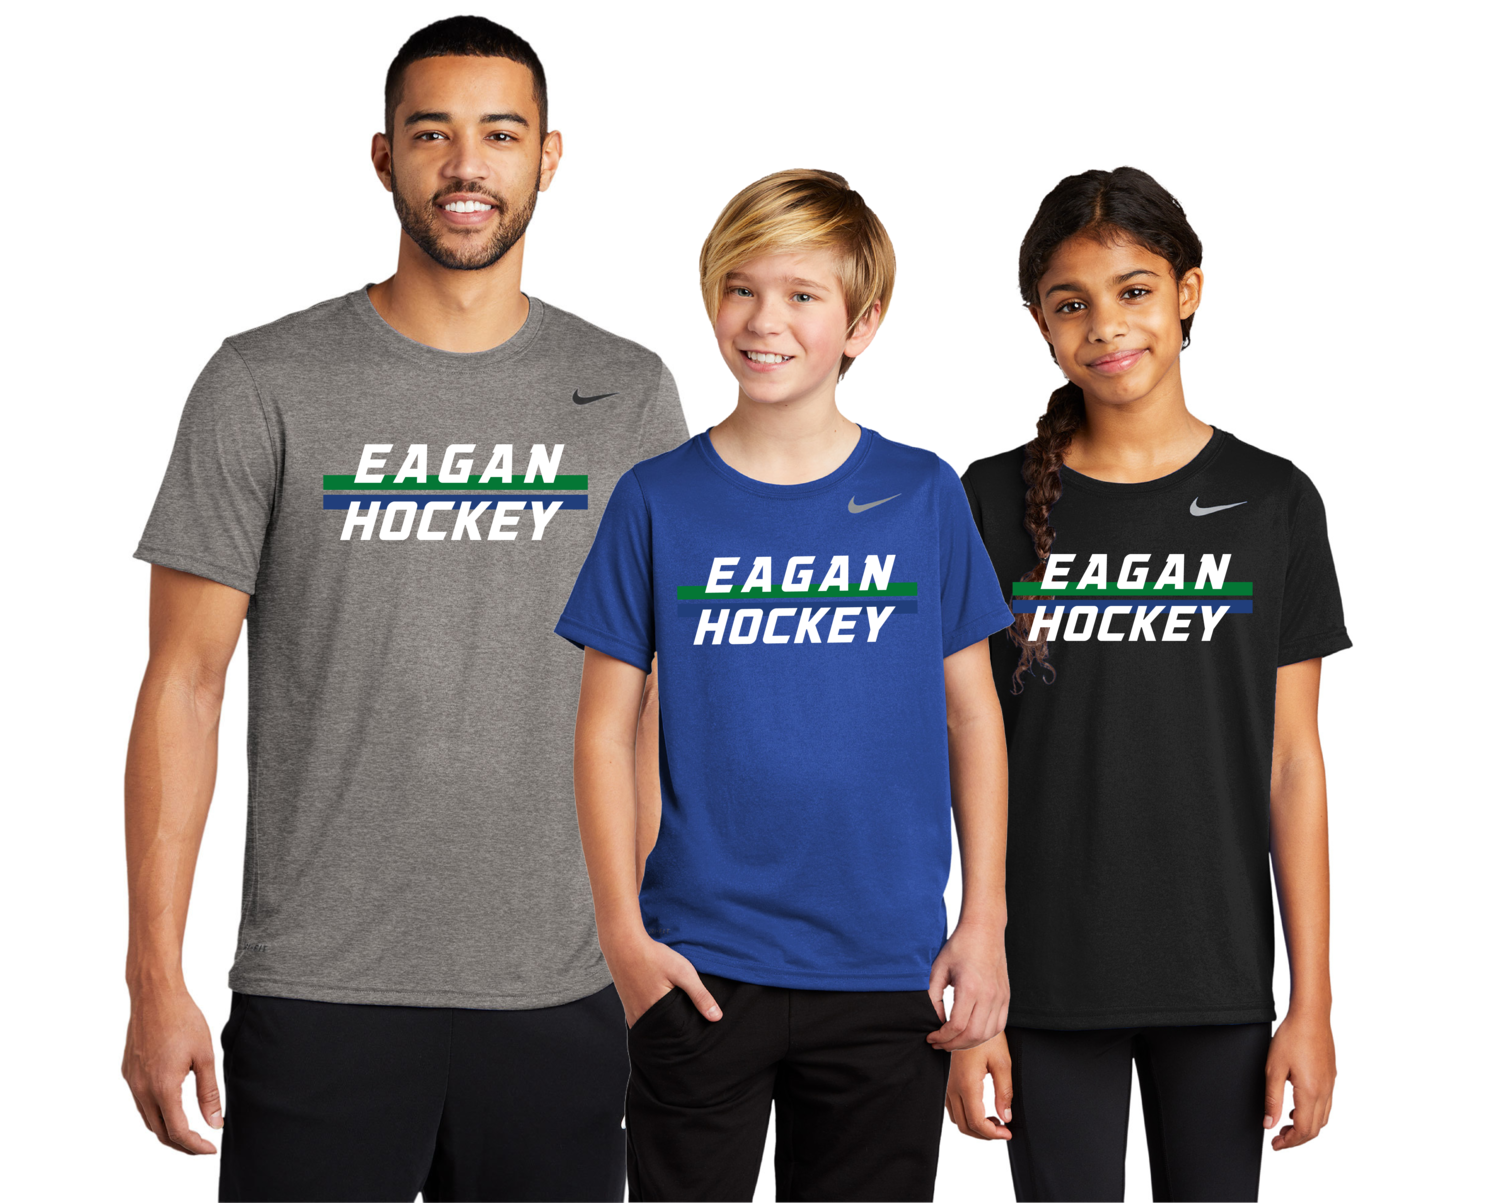 Eagan Hockey Nike Legend Dri Fit Shirts - Adult and Youth